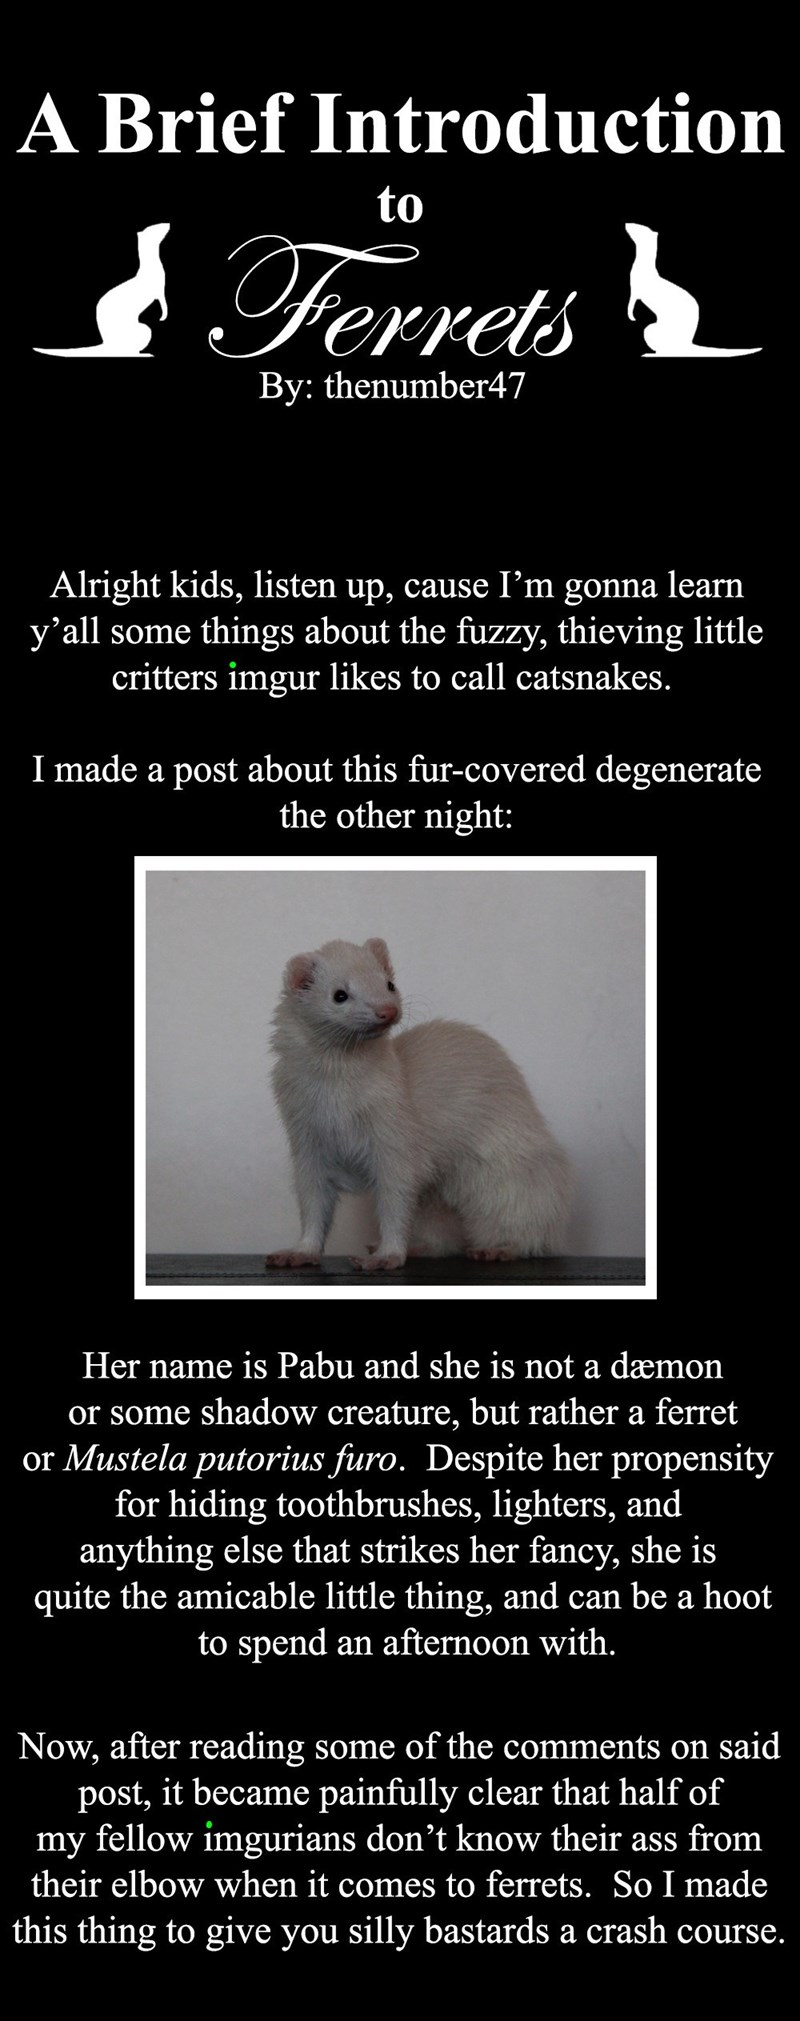 Photo caption - A Brief Introduction to Ferrets By: thenumber47 Alright kids, listen up, cause I'm gonna learn y'all some things about the fuzzy, thieving little critters imgur likes to call catsnakes. I made a post about this fur-covered degenerate the other night: Her name is Pabu and she is not a dæmon or some shadow creature, but rather a ferret or Mustela putorius furo. Despite her propensity for hiding toothbrushes, lighters, and anything else that strikes her fancy, she is quite the amica